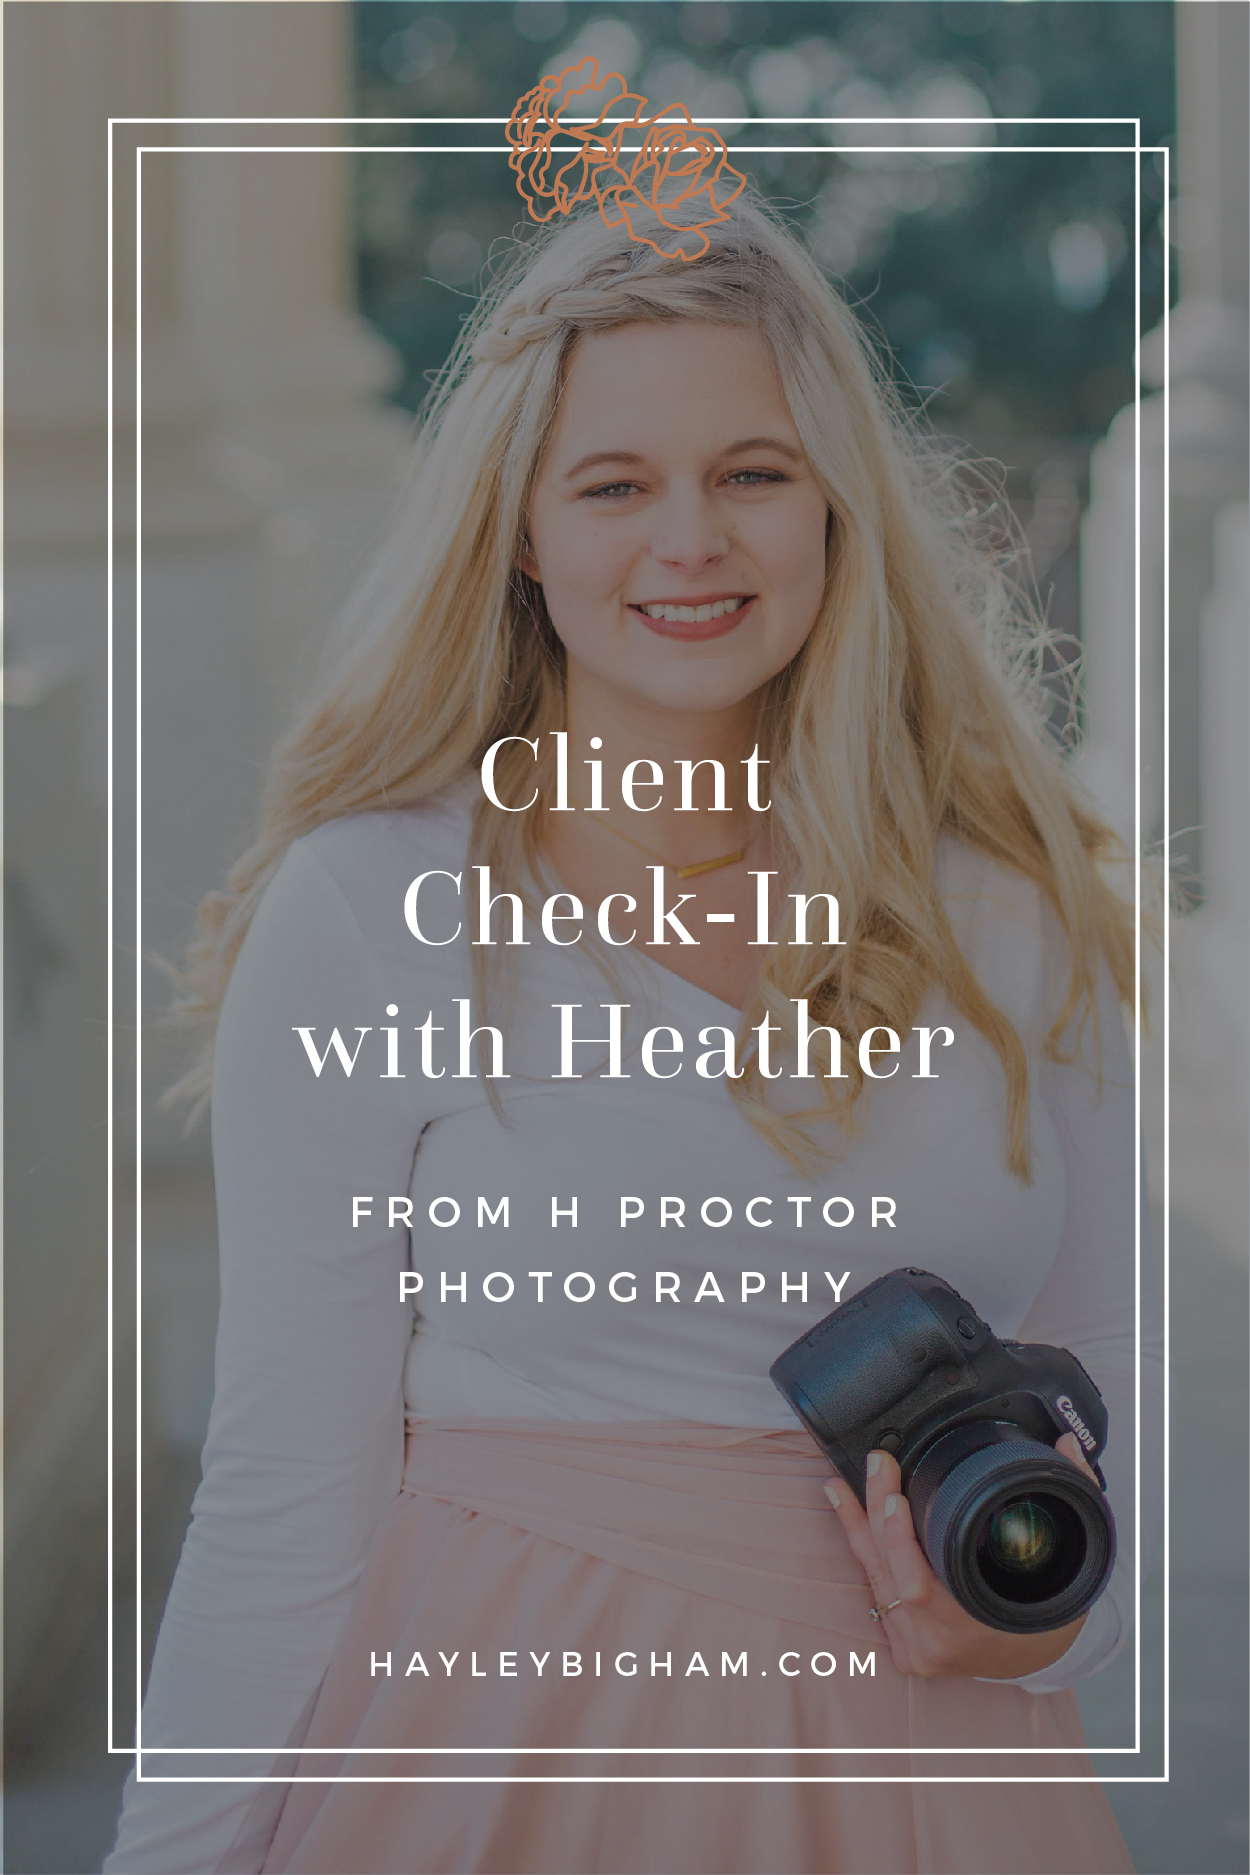 Pinterest-Client Check-In with Heather from H Proctor Photography - Hayley Bigham Designs-01.jpg